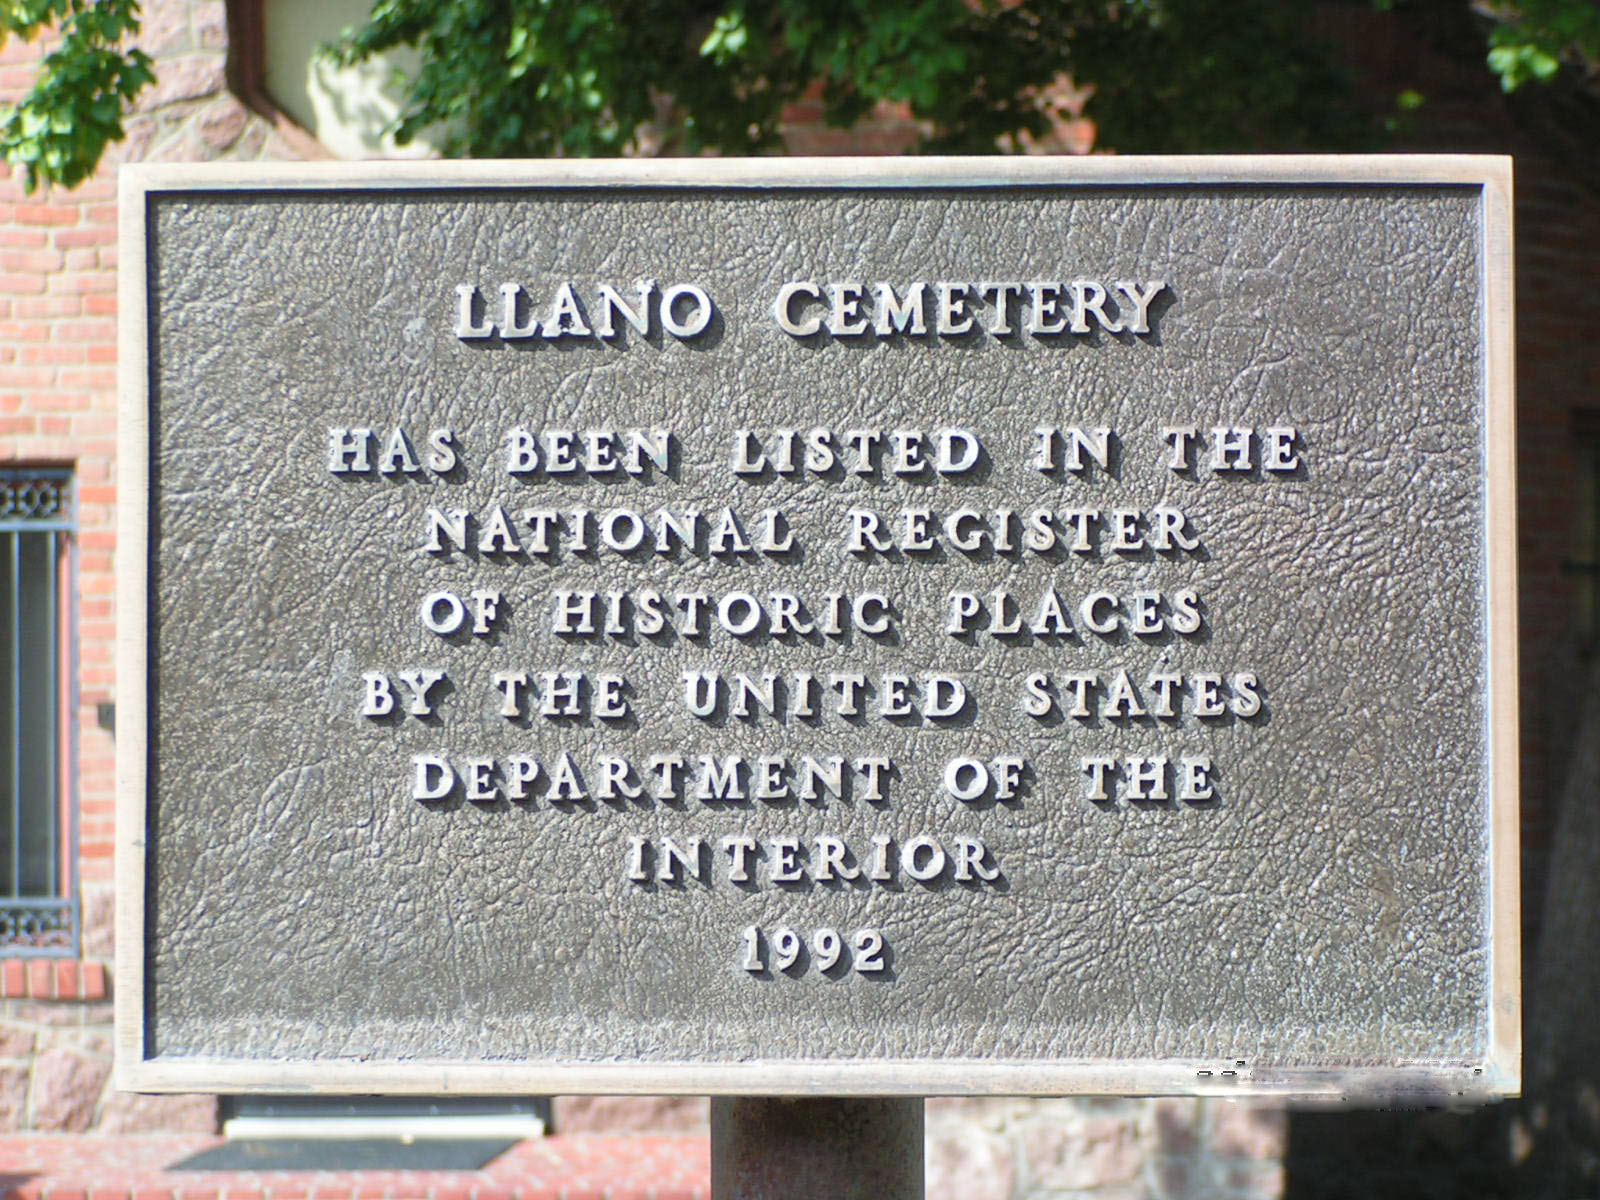 National Register of Historic Places plaque at the Llano Cemetery.